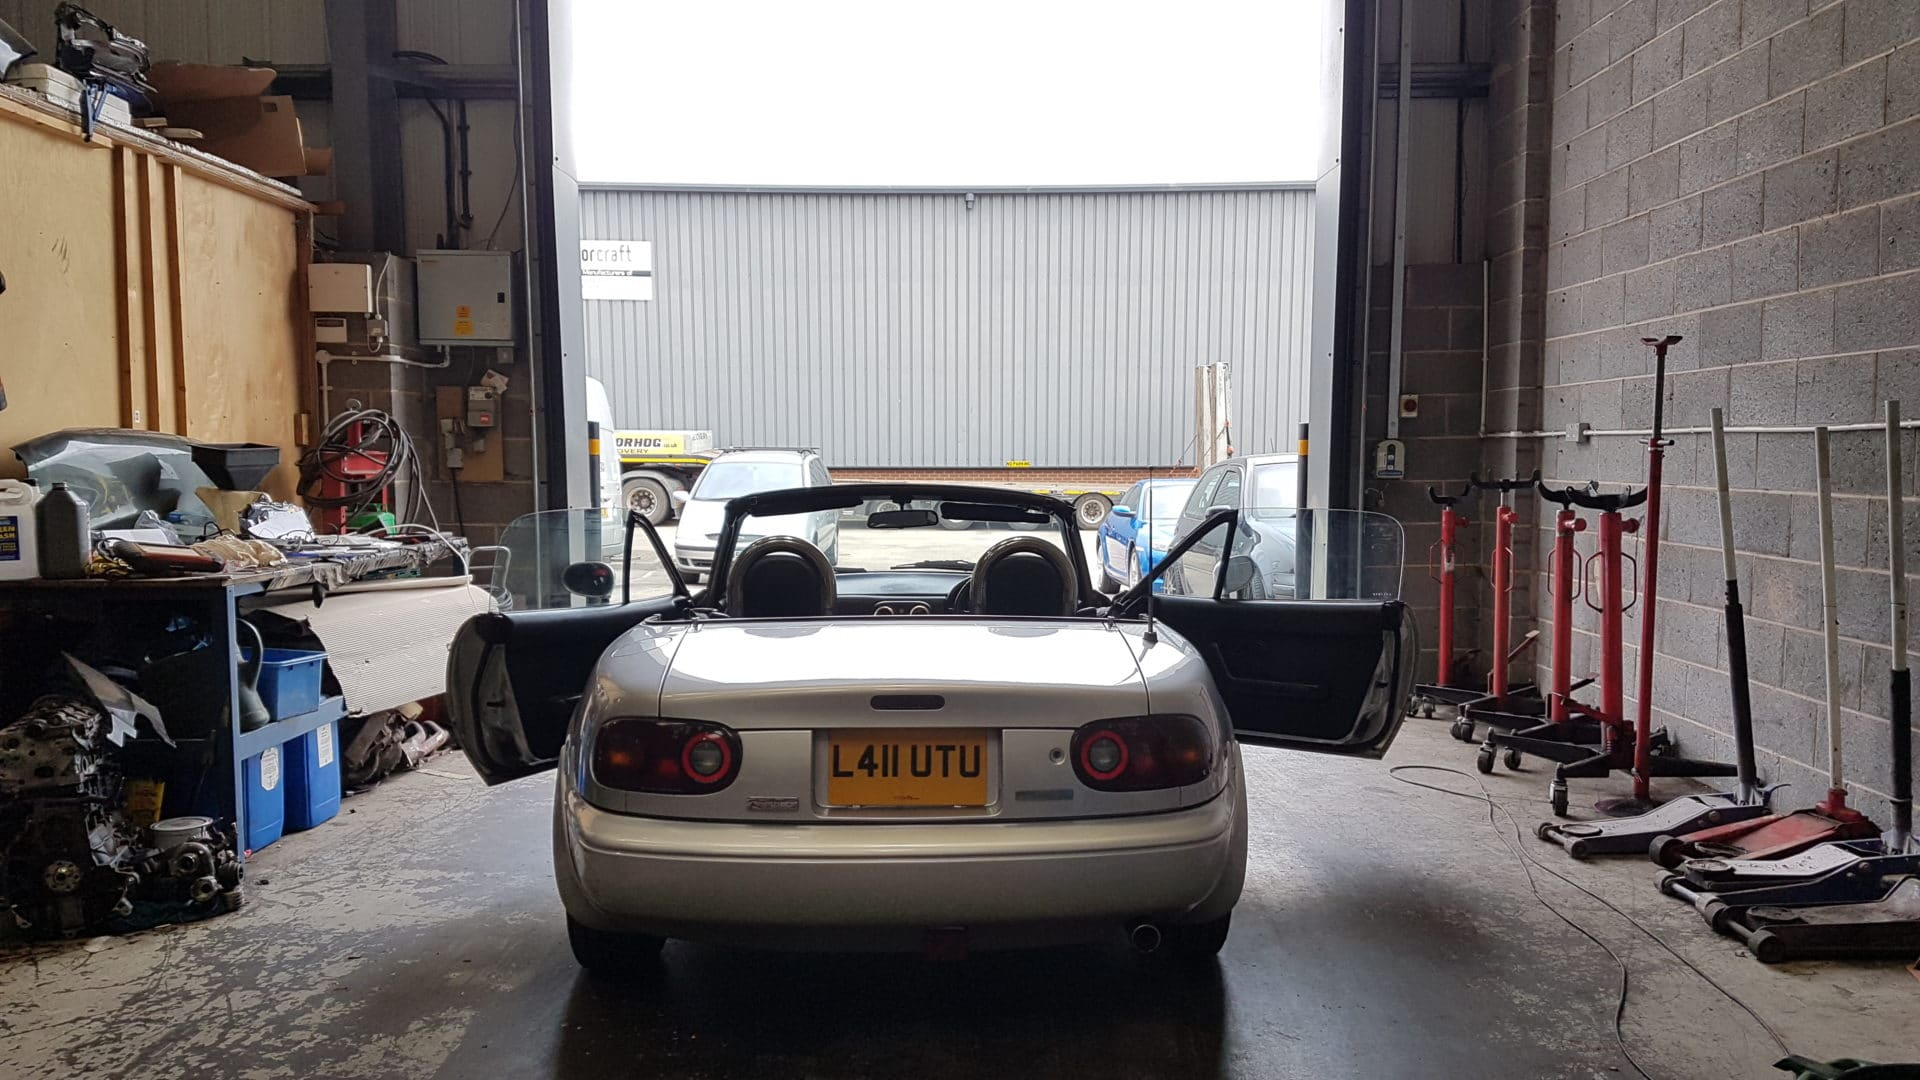 Mark Longland, Mazda MX5, Mazda, MX5, Mazda Eunos, Eunos, sports car, Miata, mazda Miata, motoring, automotive, car, cars, lassic car, retro car, rear wheel drive, modified car, MX5 project, Eunos project, Miata project, not2grand, www.not2grand.co.uk, adrian flux, featured, car, cars, ebay, ebay motors, autotrader